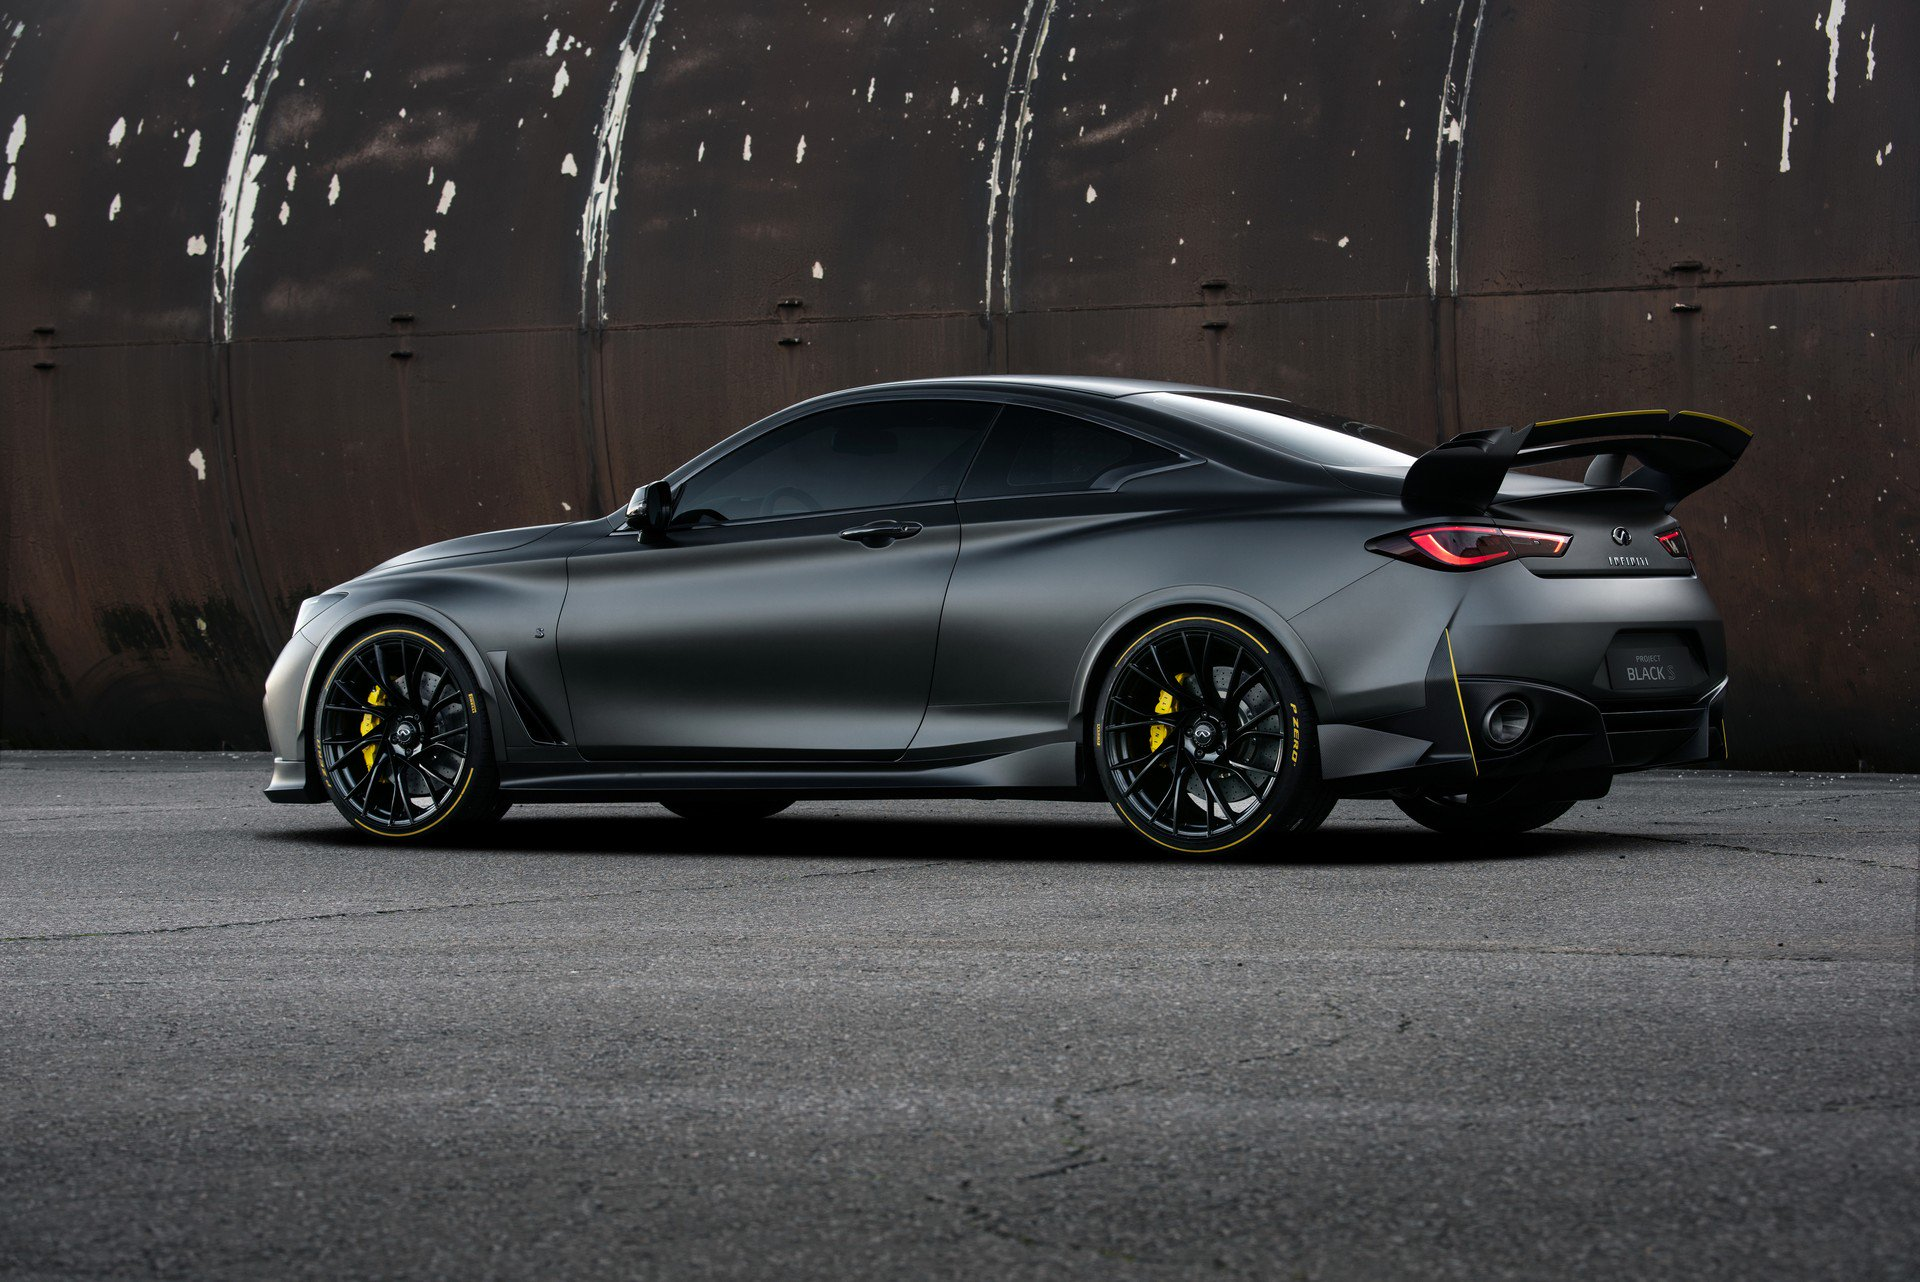 Infiniti Project Black S Prototype (16)